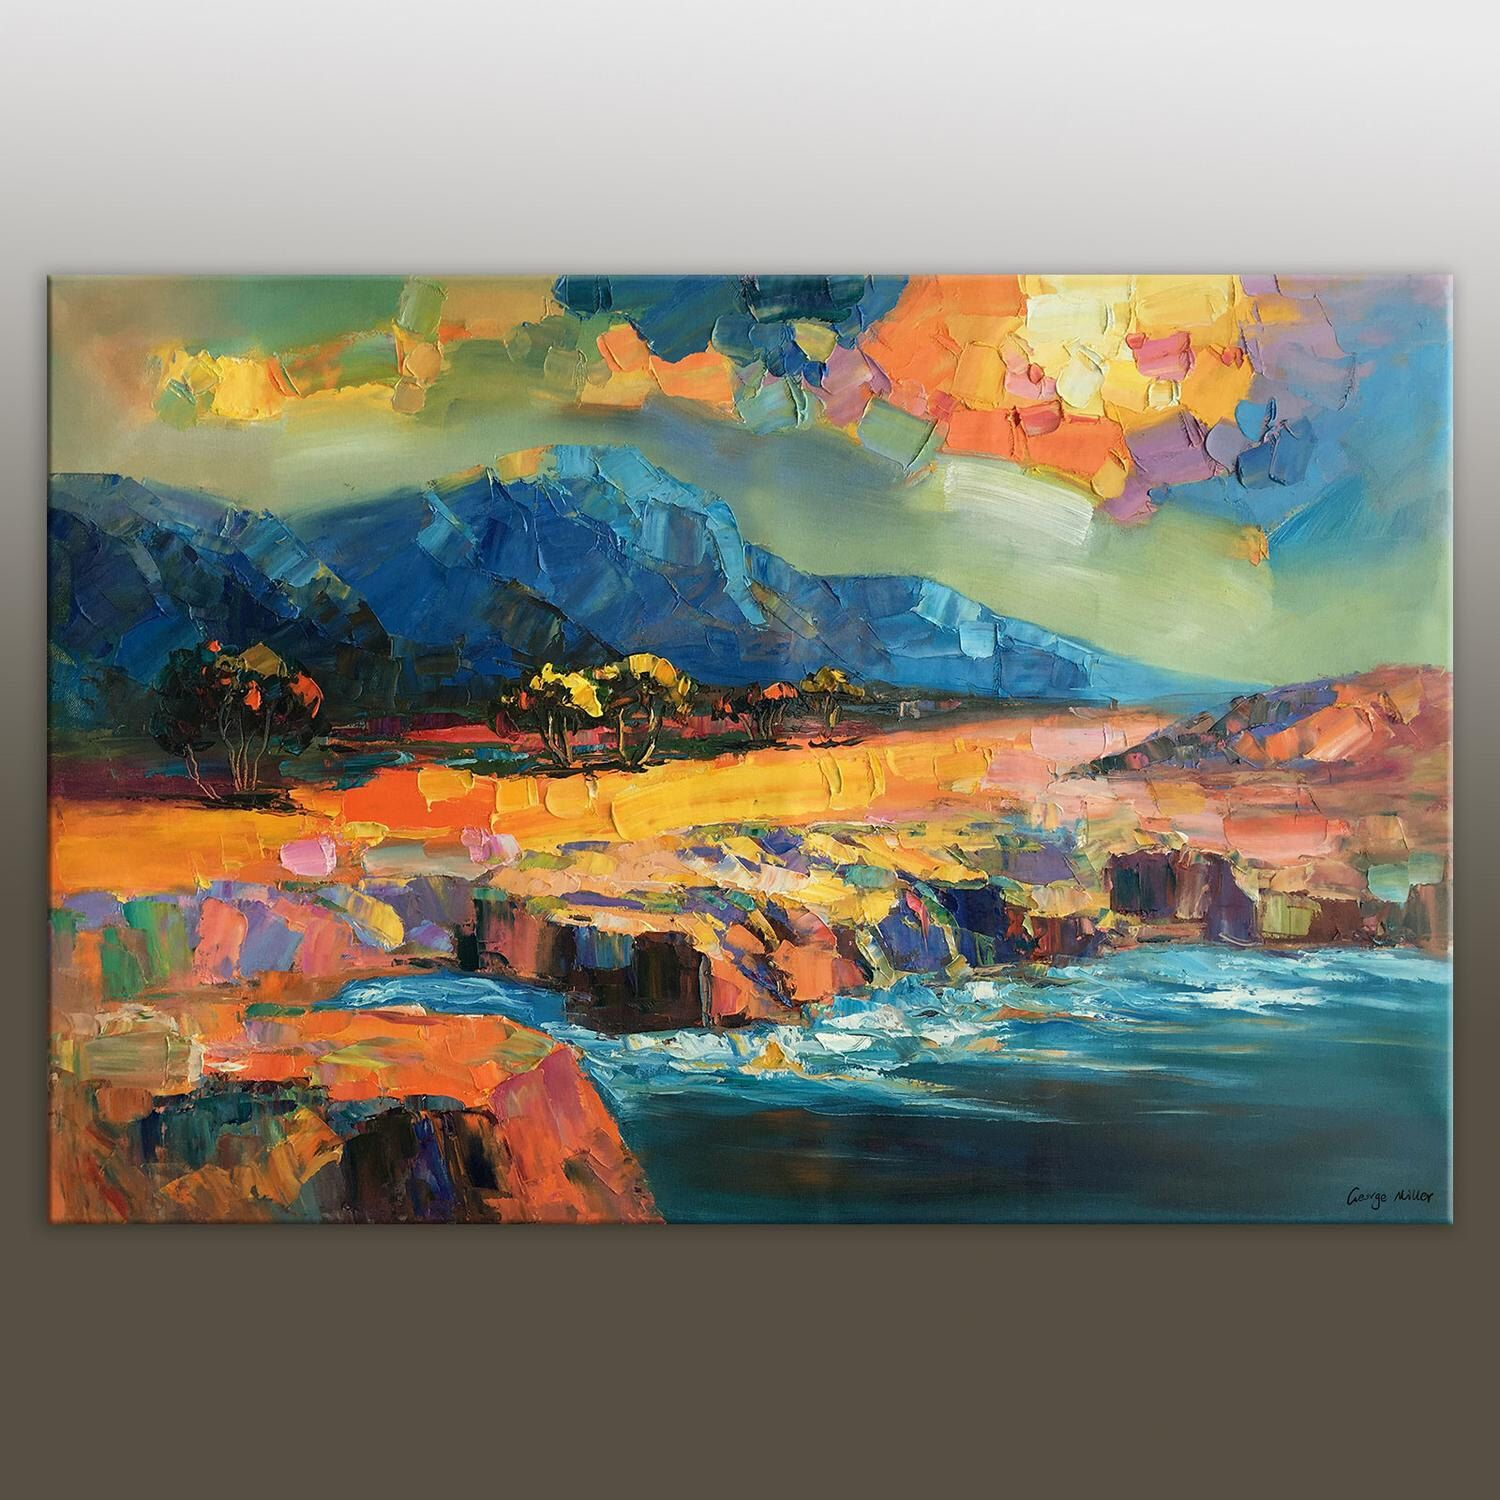 Abstract Painting, Modern Art, Large Wall Art Canvas, Large Landscape Painting, Original Art, Abstract Canvas Painting, Abstract Landscape by GeorgeMillerArt on Etsy https://www.etsy.com/listing/246539304/abstract-painting-modern-art-large-wall